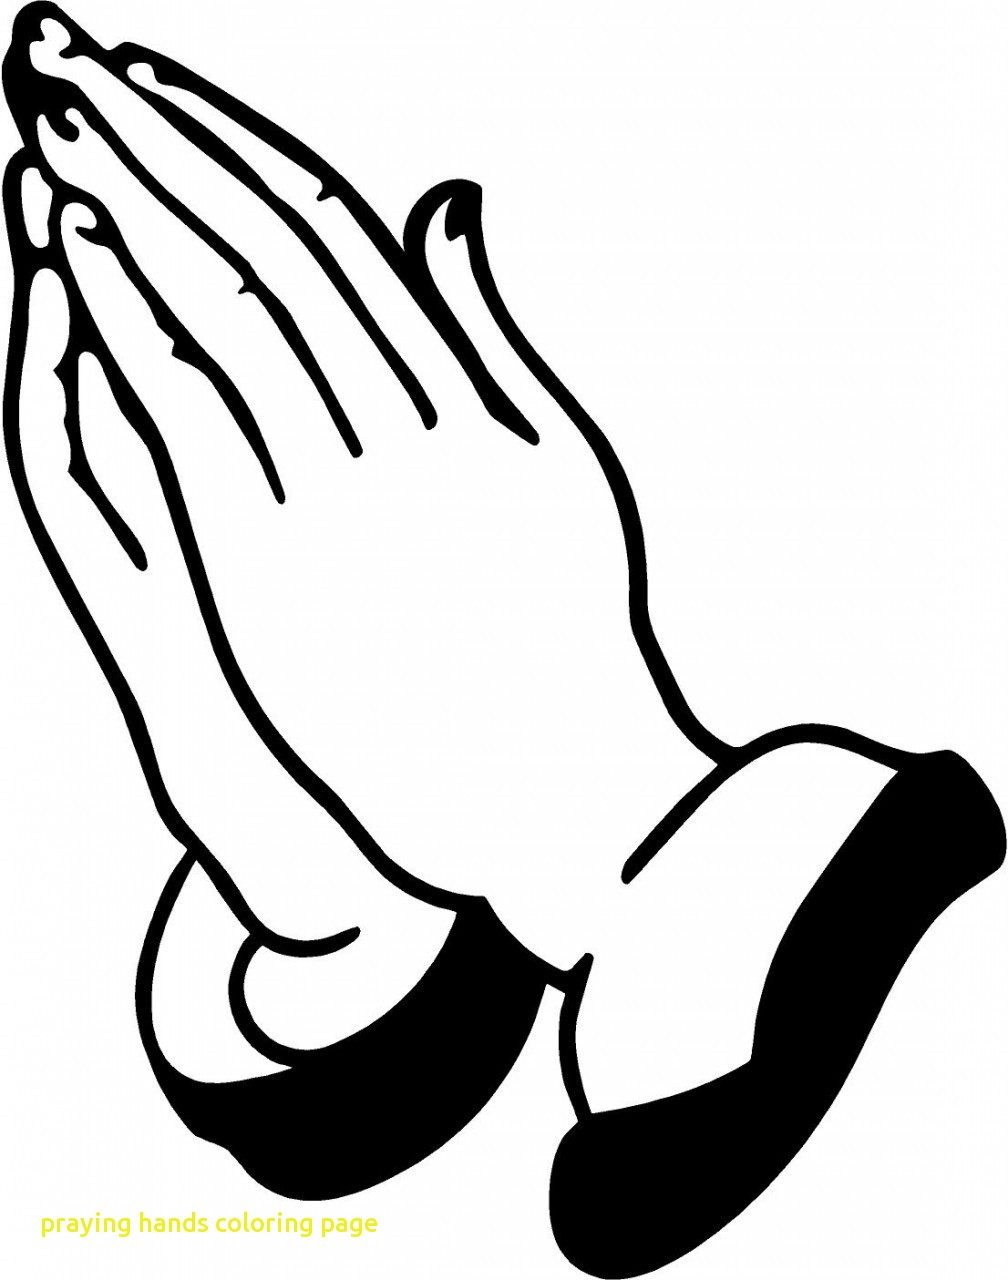 1008x1280 How To Draw Praying Hands Emoji Easy To Draw Praying Hands Top